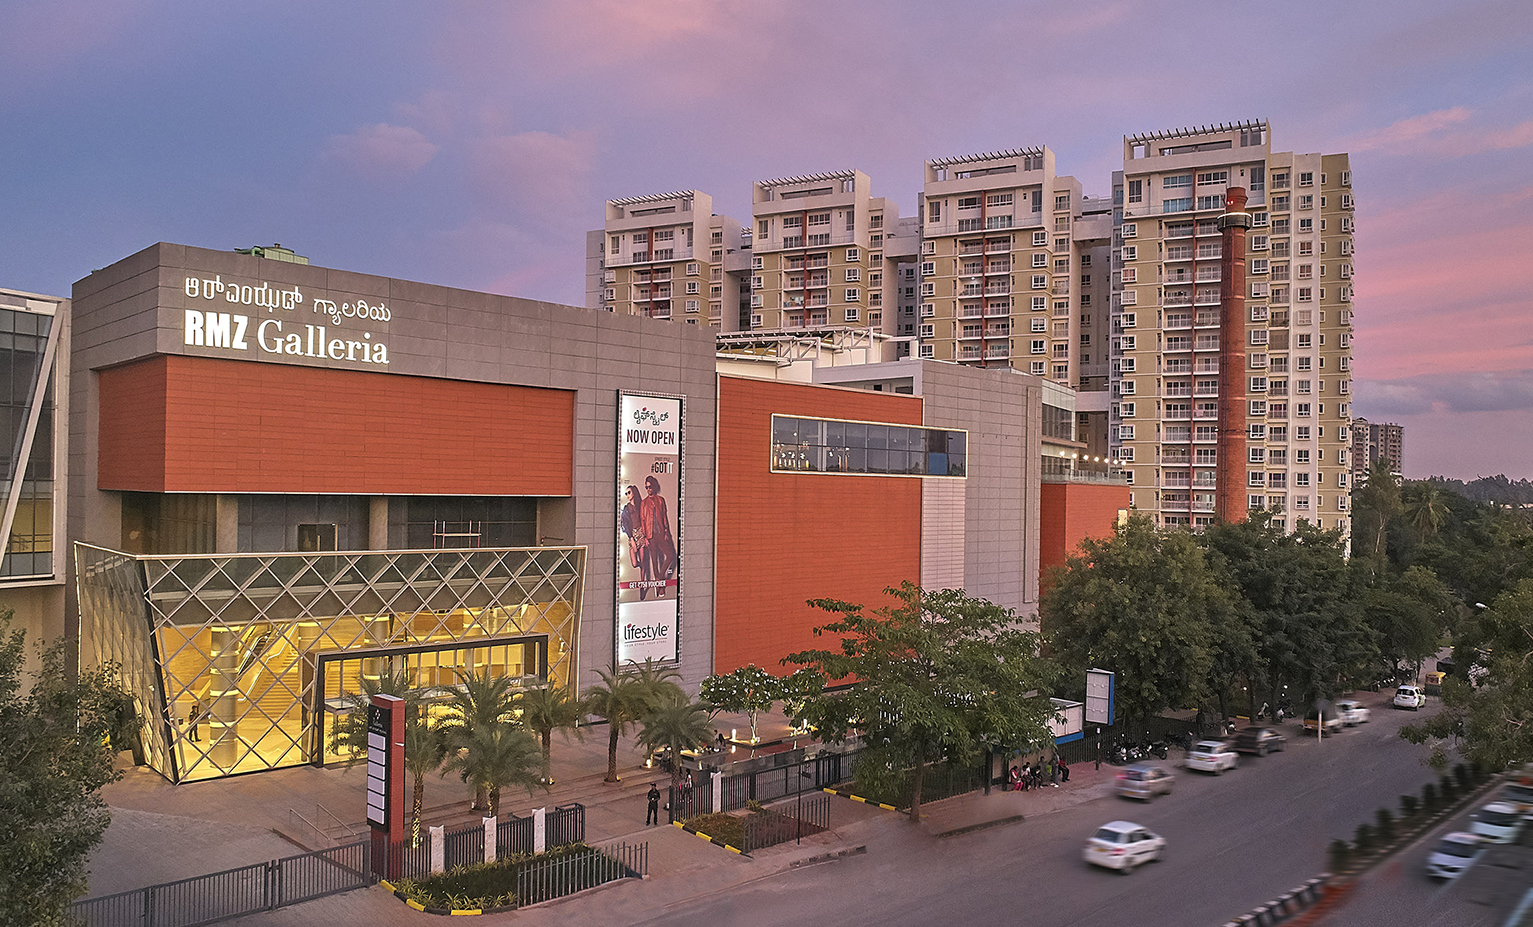 A nighttime view of a mall in India